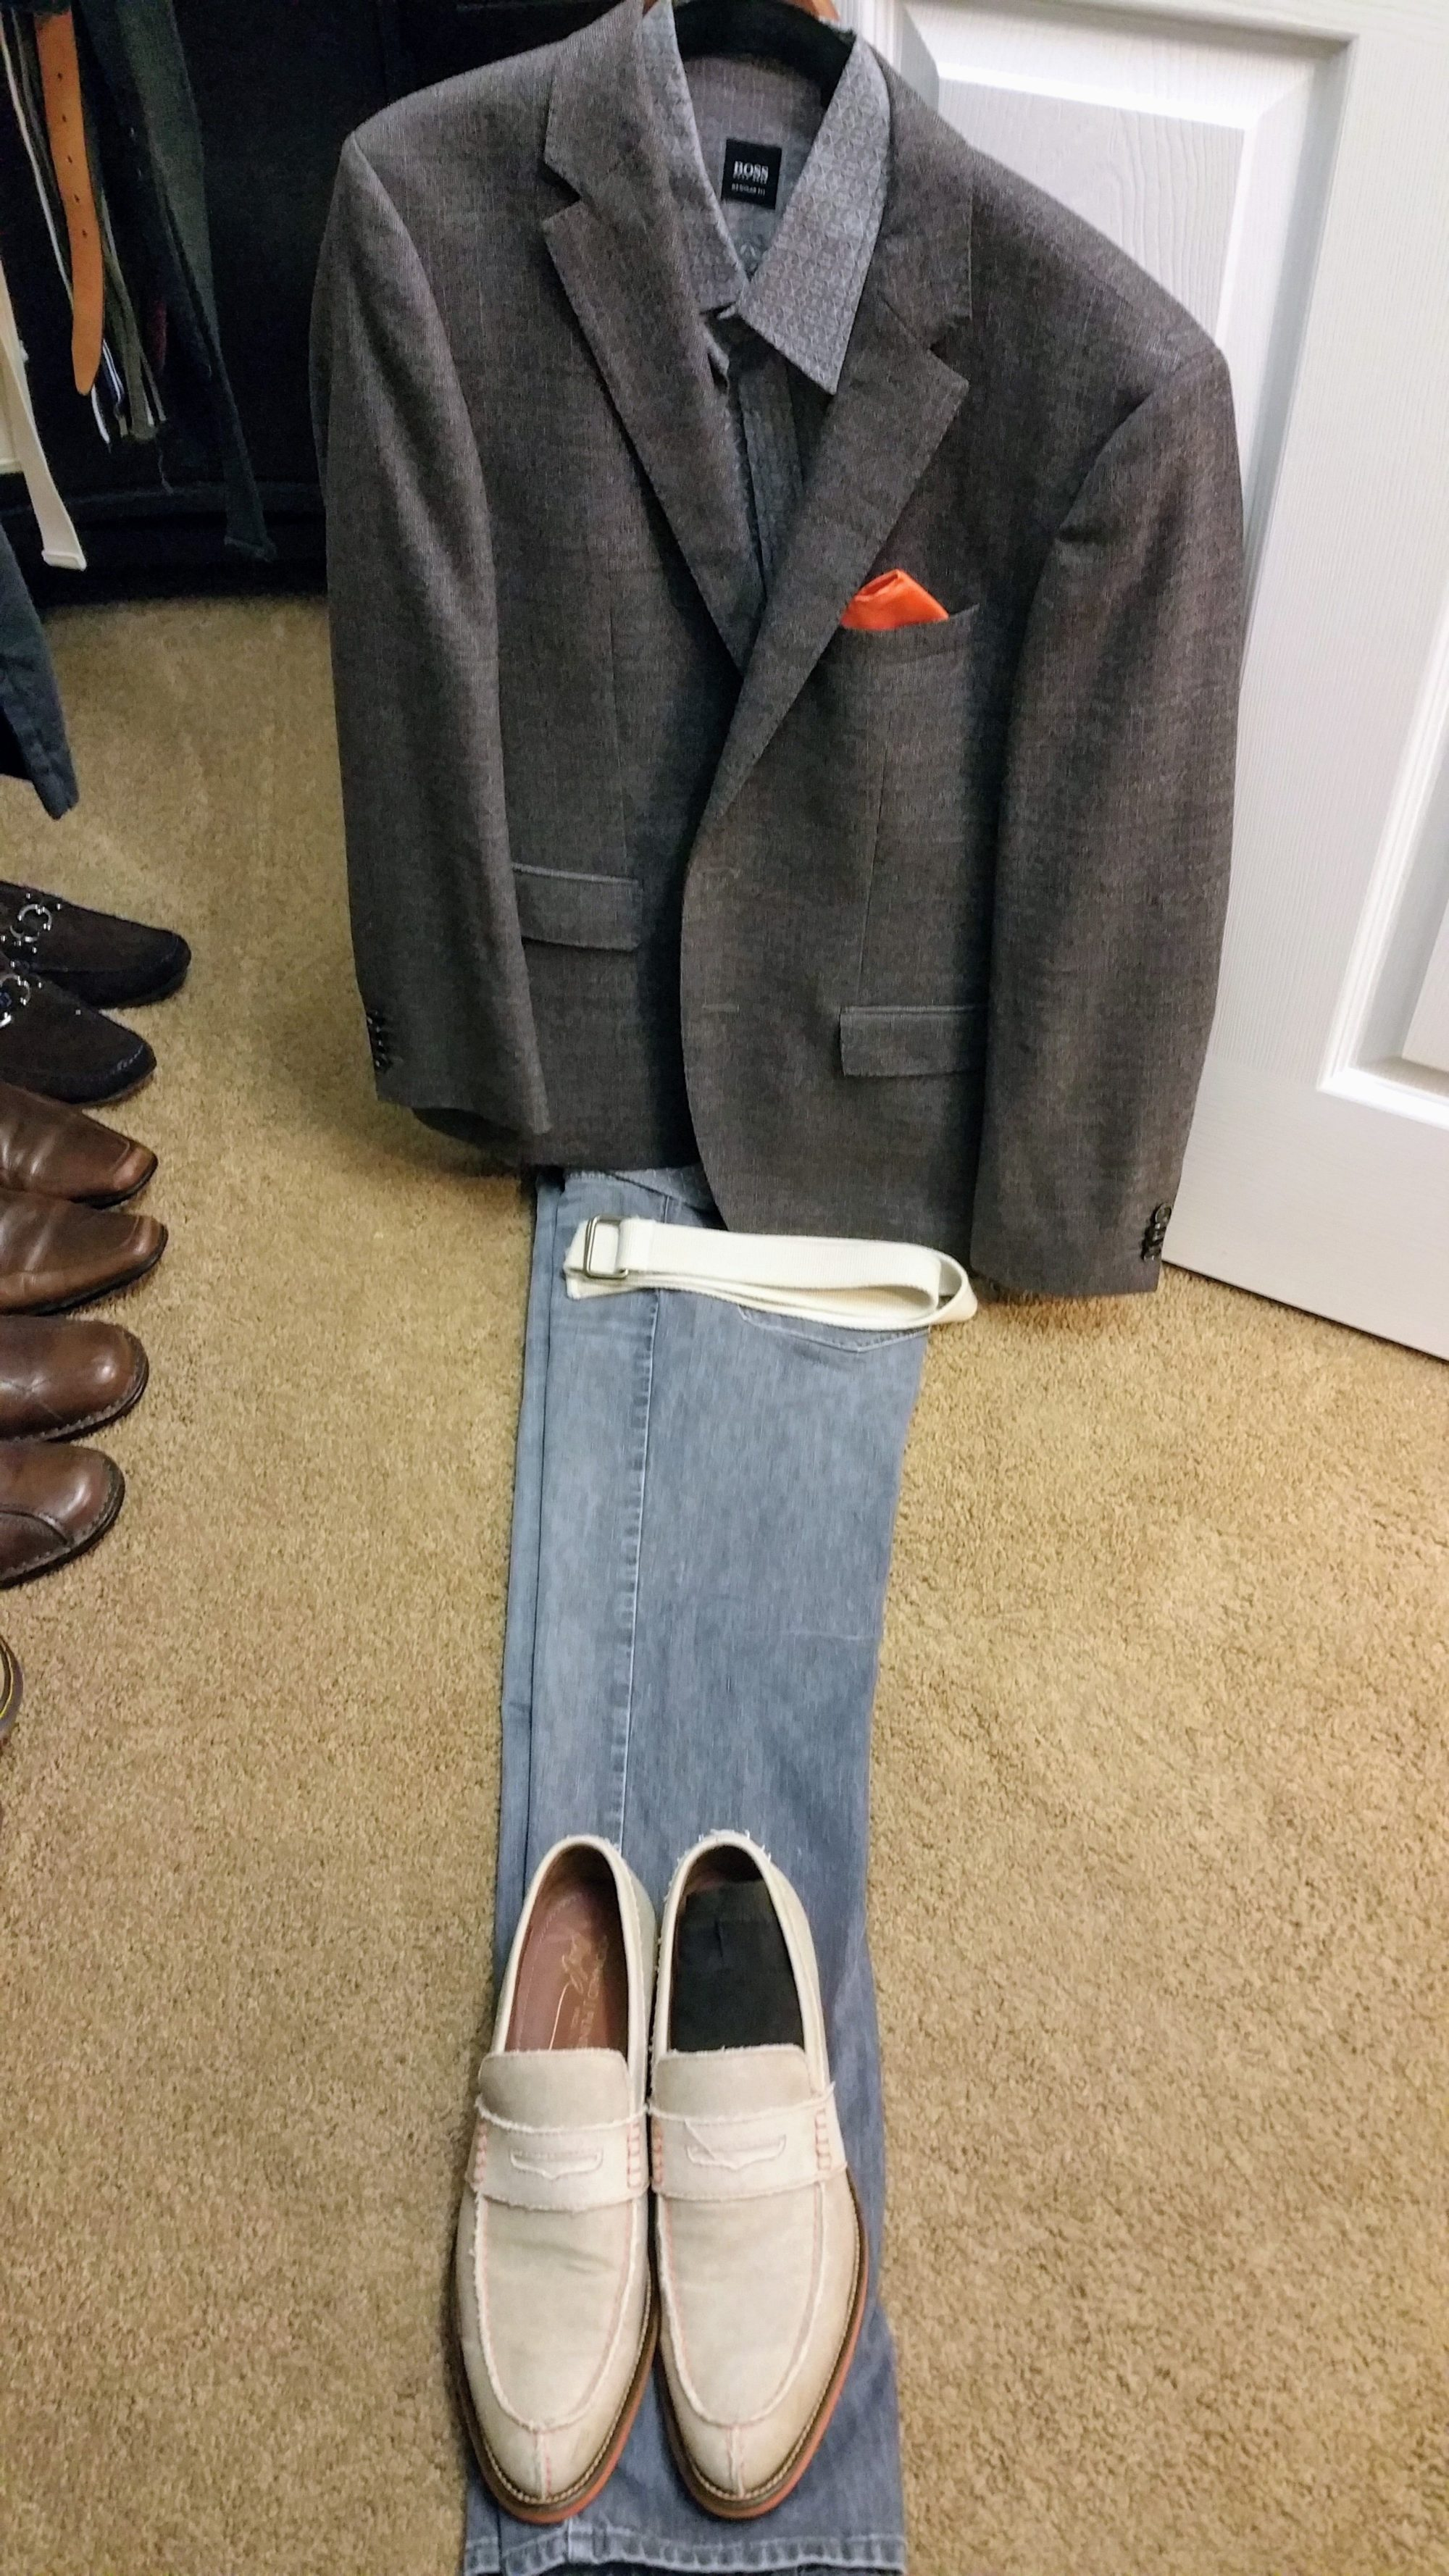 interview attire for men what to wear and how to wear it to impress kris fannin what to wear to an interview attire for men casual match intelivate